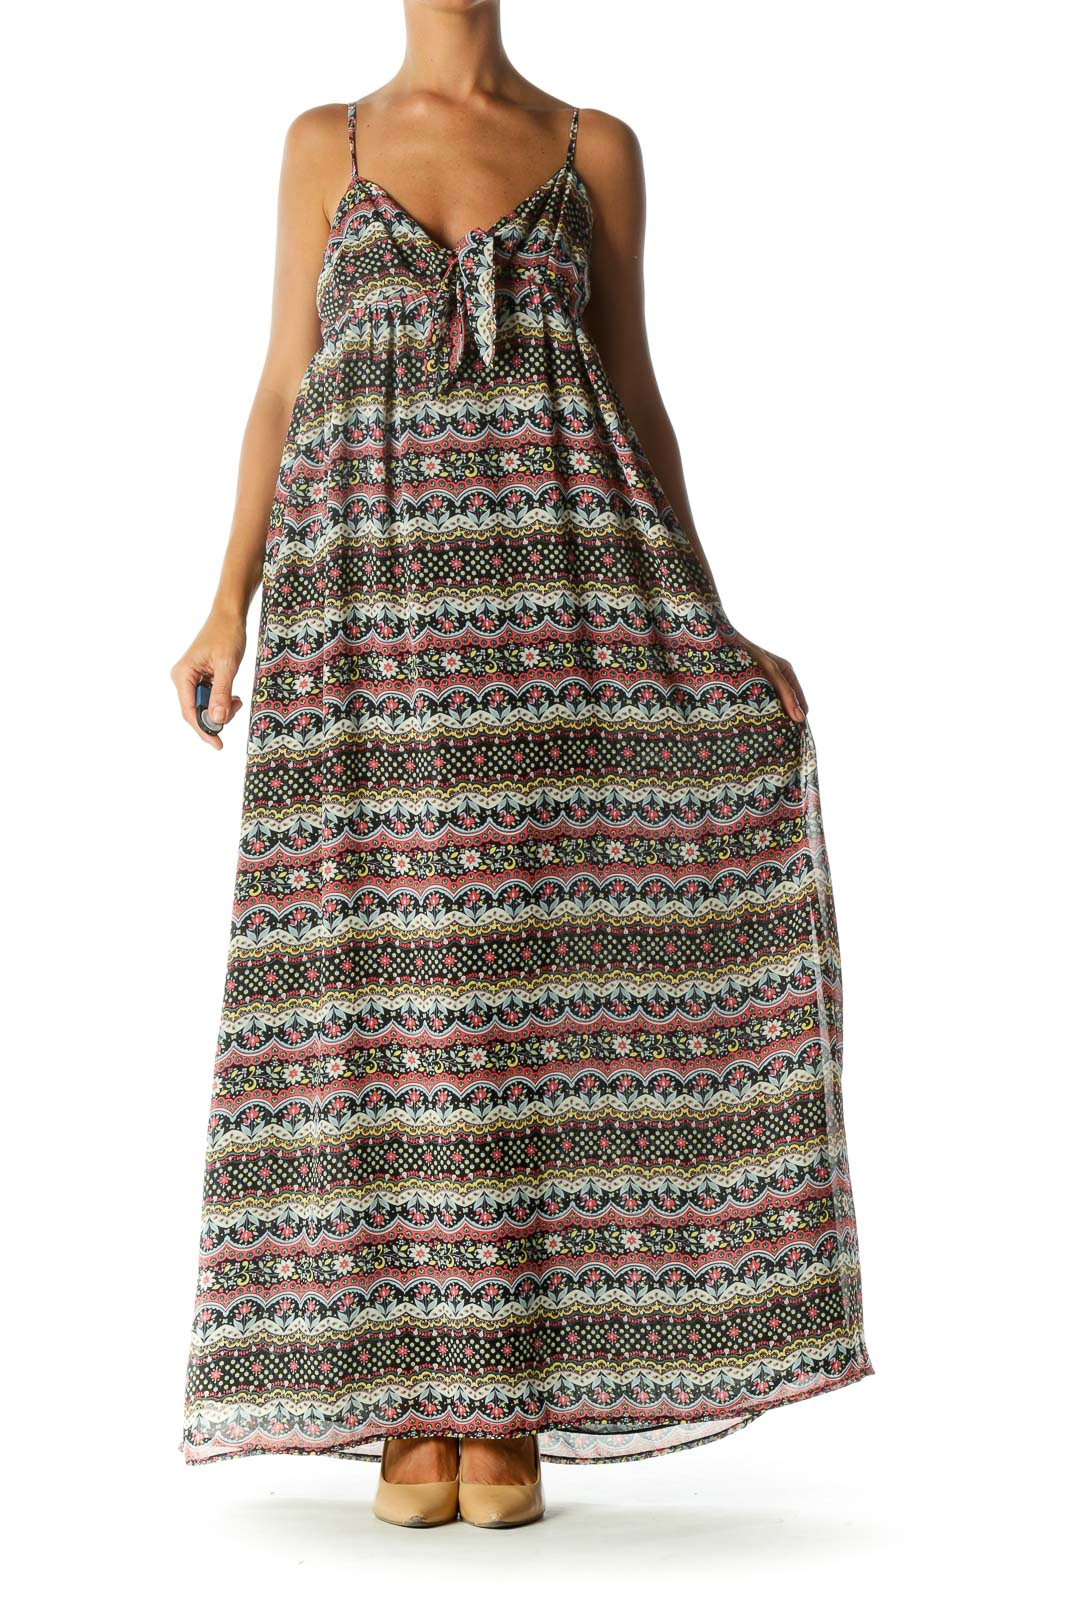 Black Pink Yellow Flower Print Cut Out Knot Spaghetti Strap Maxi Dress